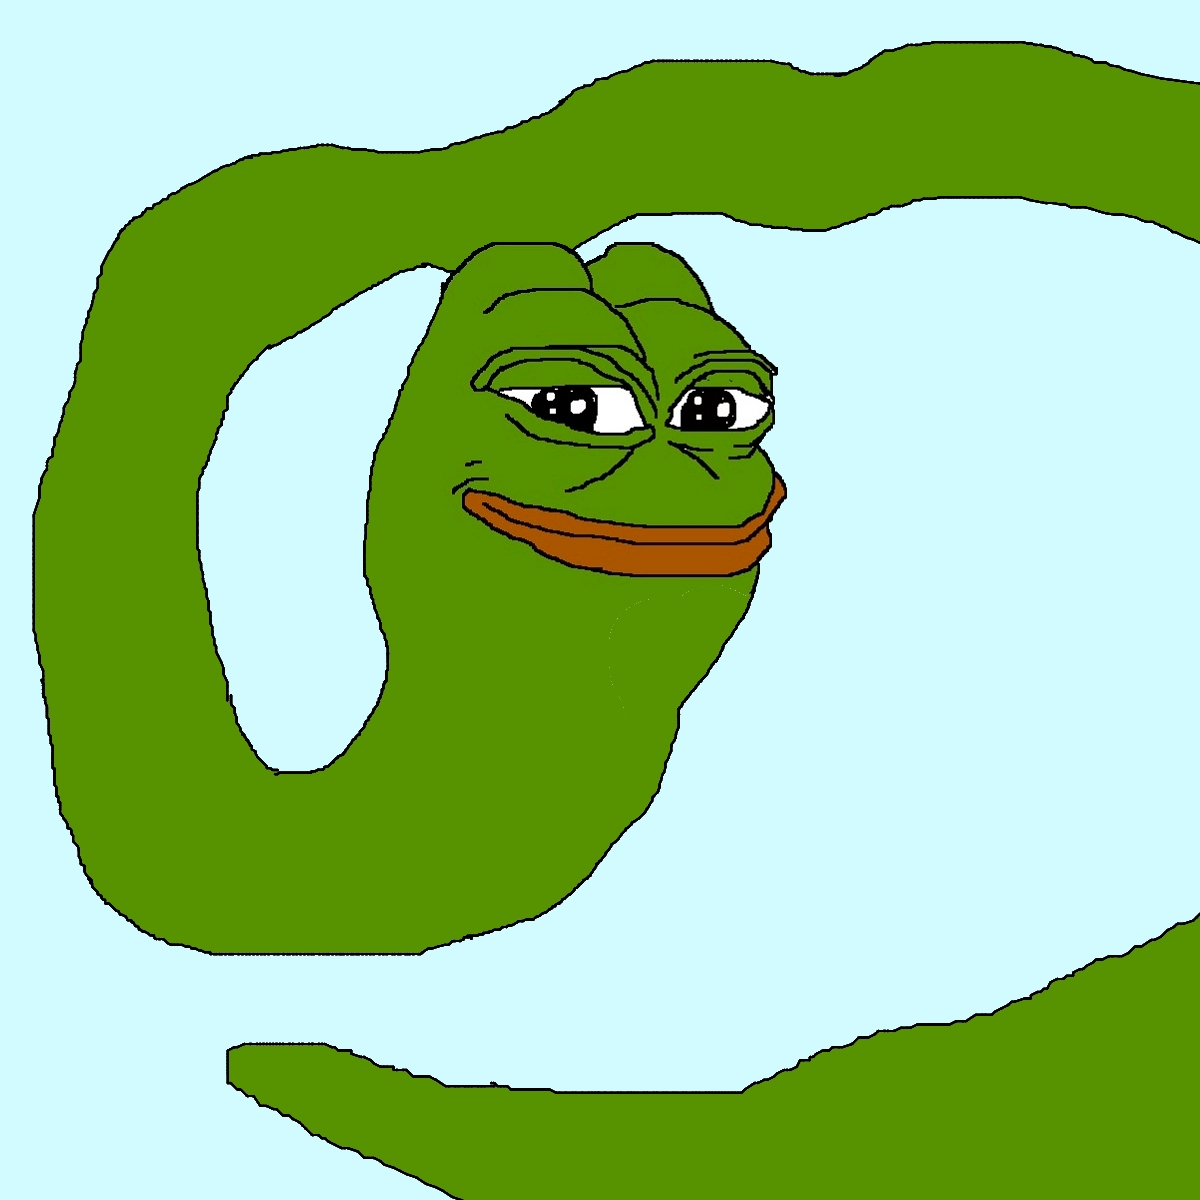 Pepe Frog Meme for Pinterest 1200x1200